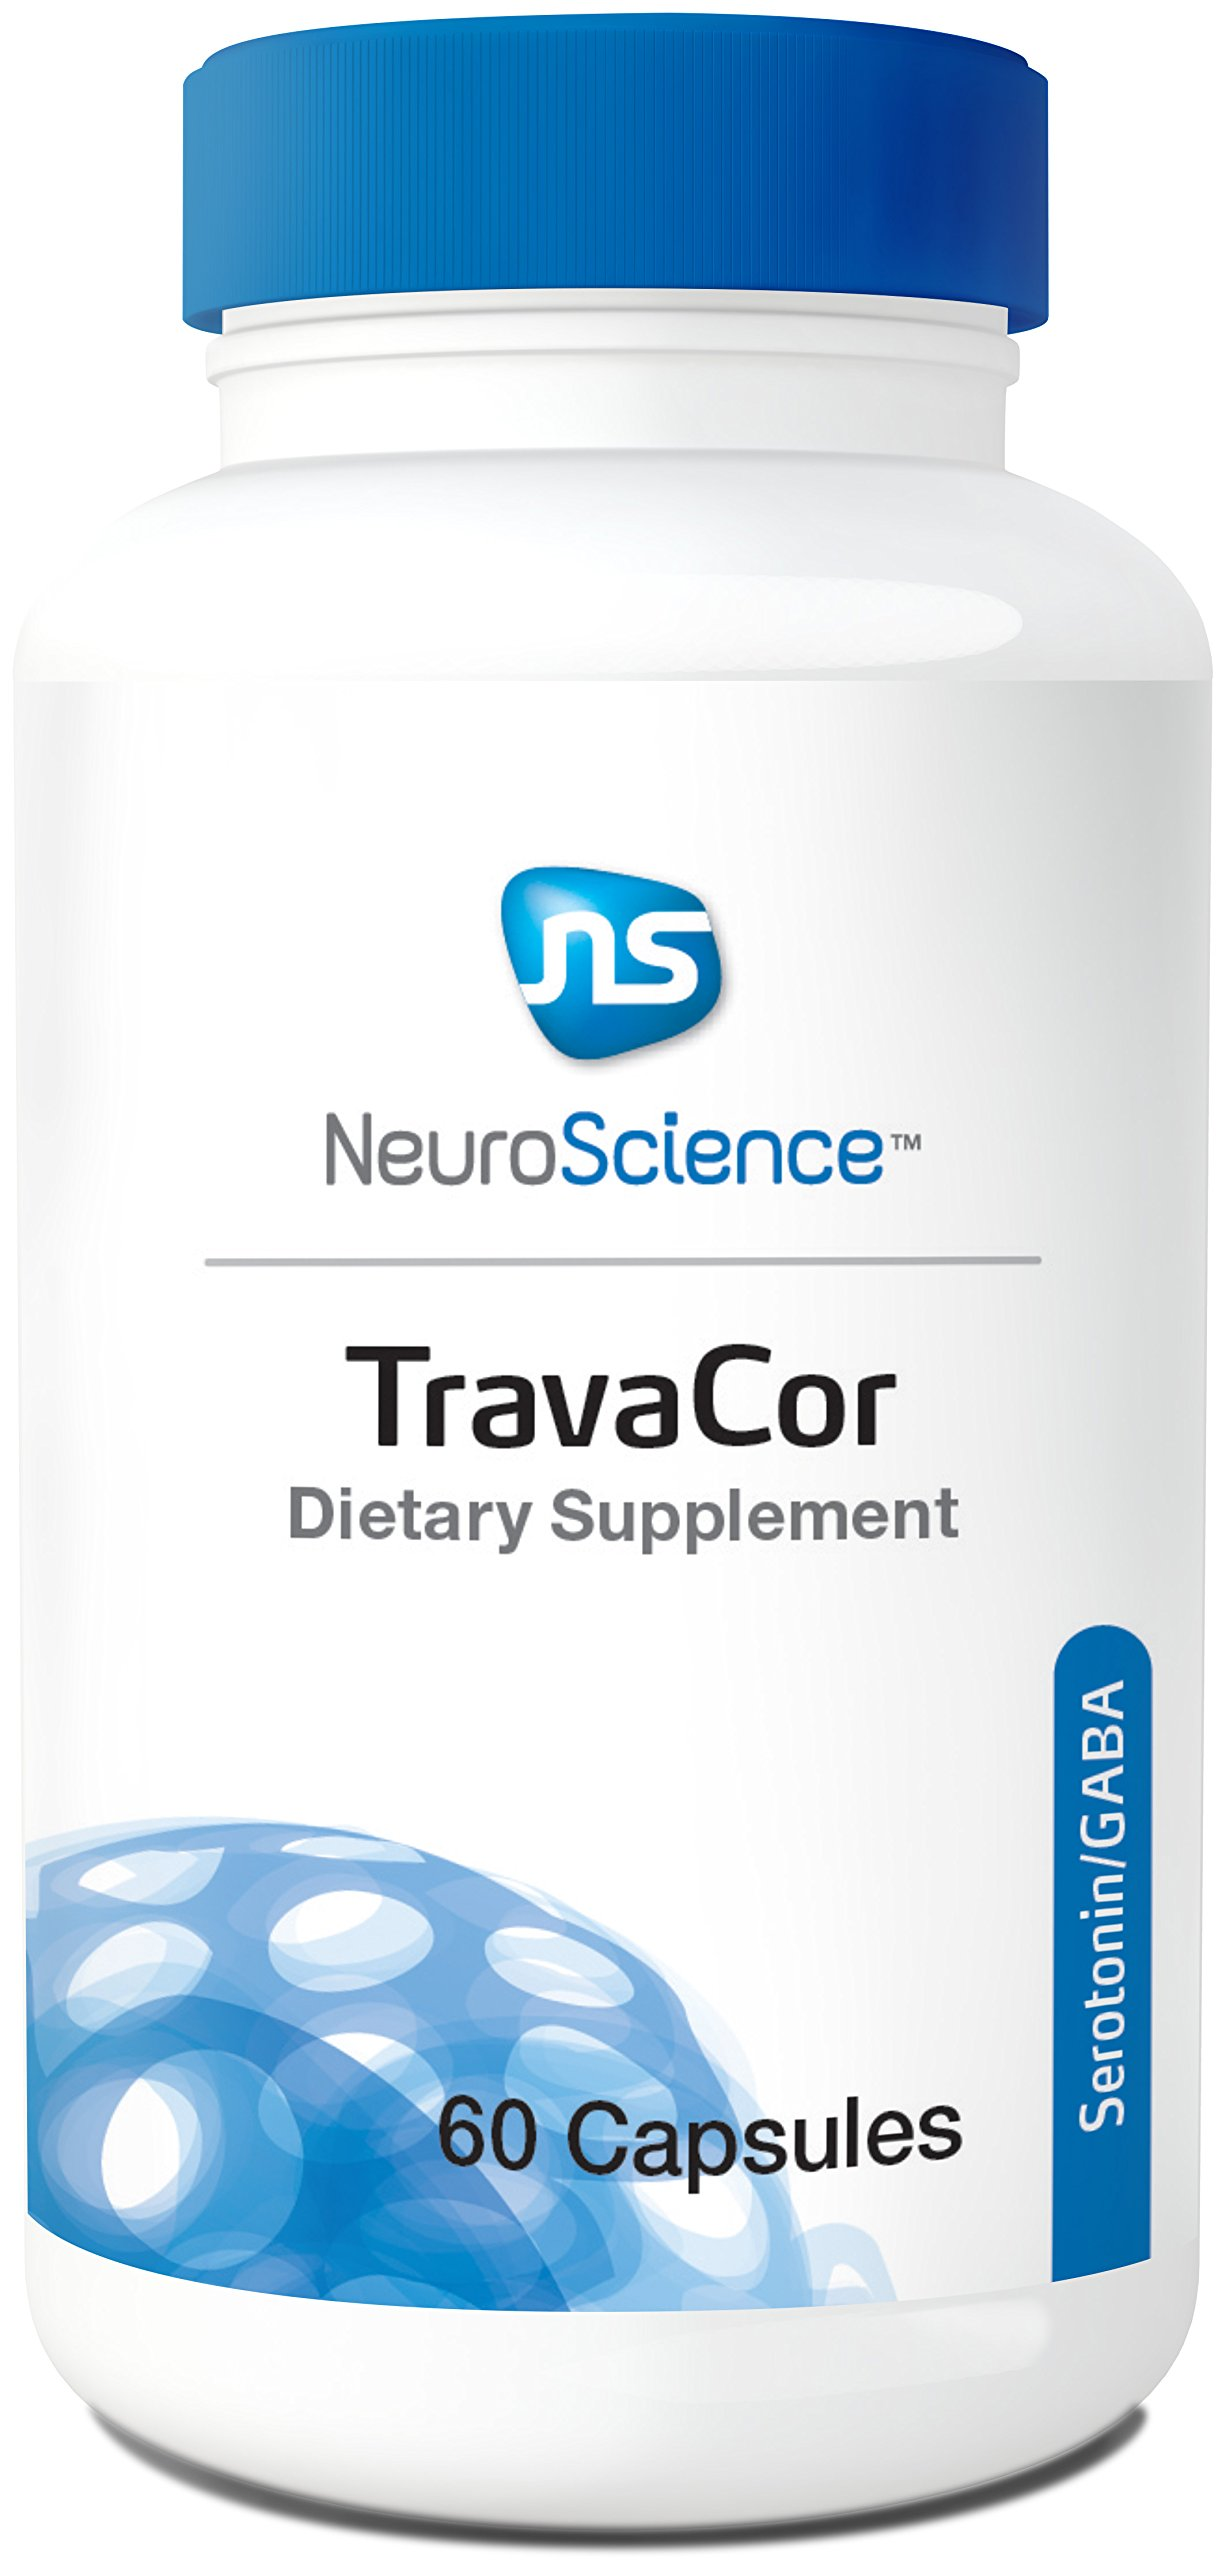 NeuroScience TravaCor - Mood and Calm Support Complex with 5-HTP and L-Theanine, Serotonin and GABA Neurotransmitter Supplement (60 Capsules)